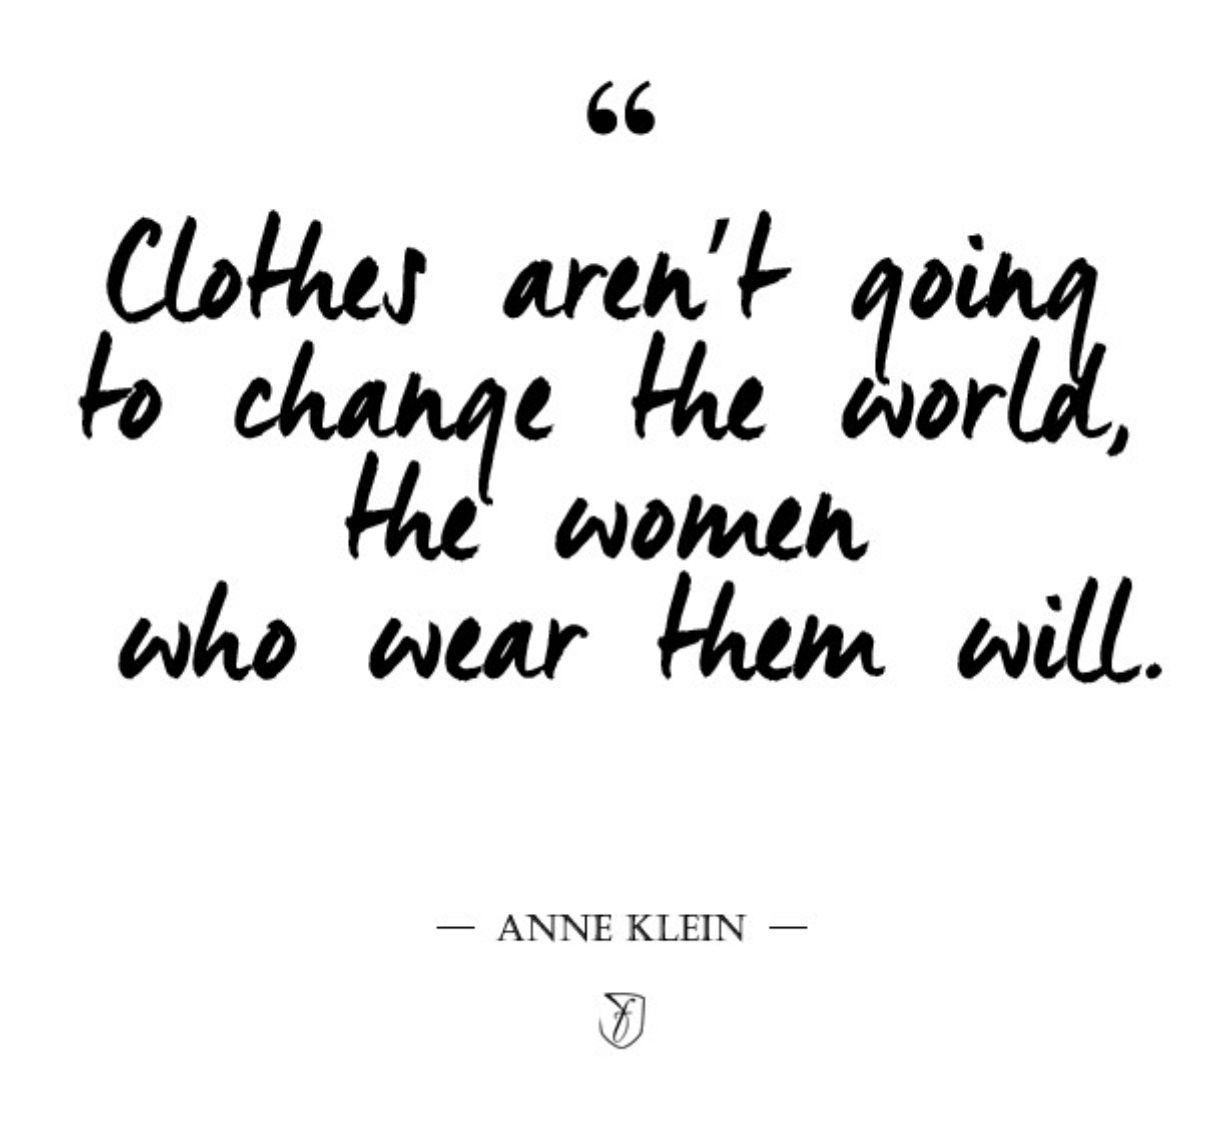 blanc blog anne klein quote.jpg